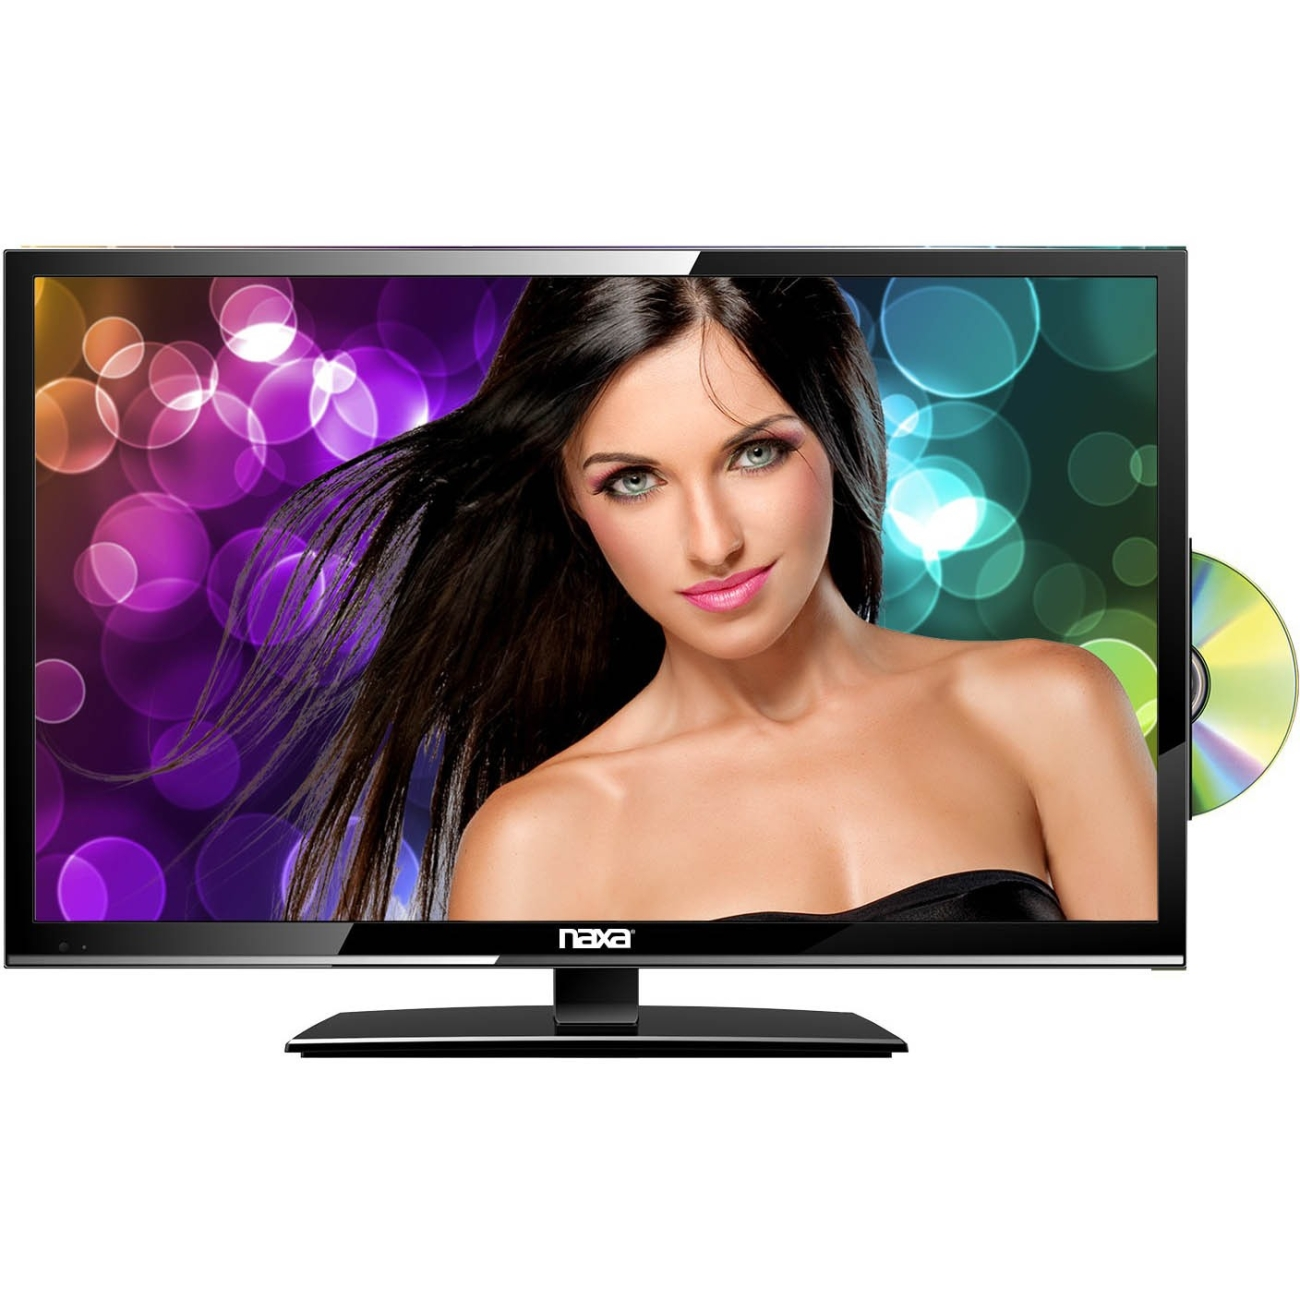 "Naxa NTD-1955 19"" 720p 60Hz LED HDTV with DVD Player with Car Package"